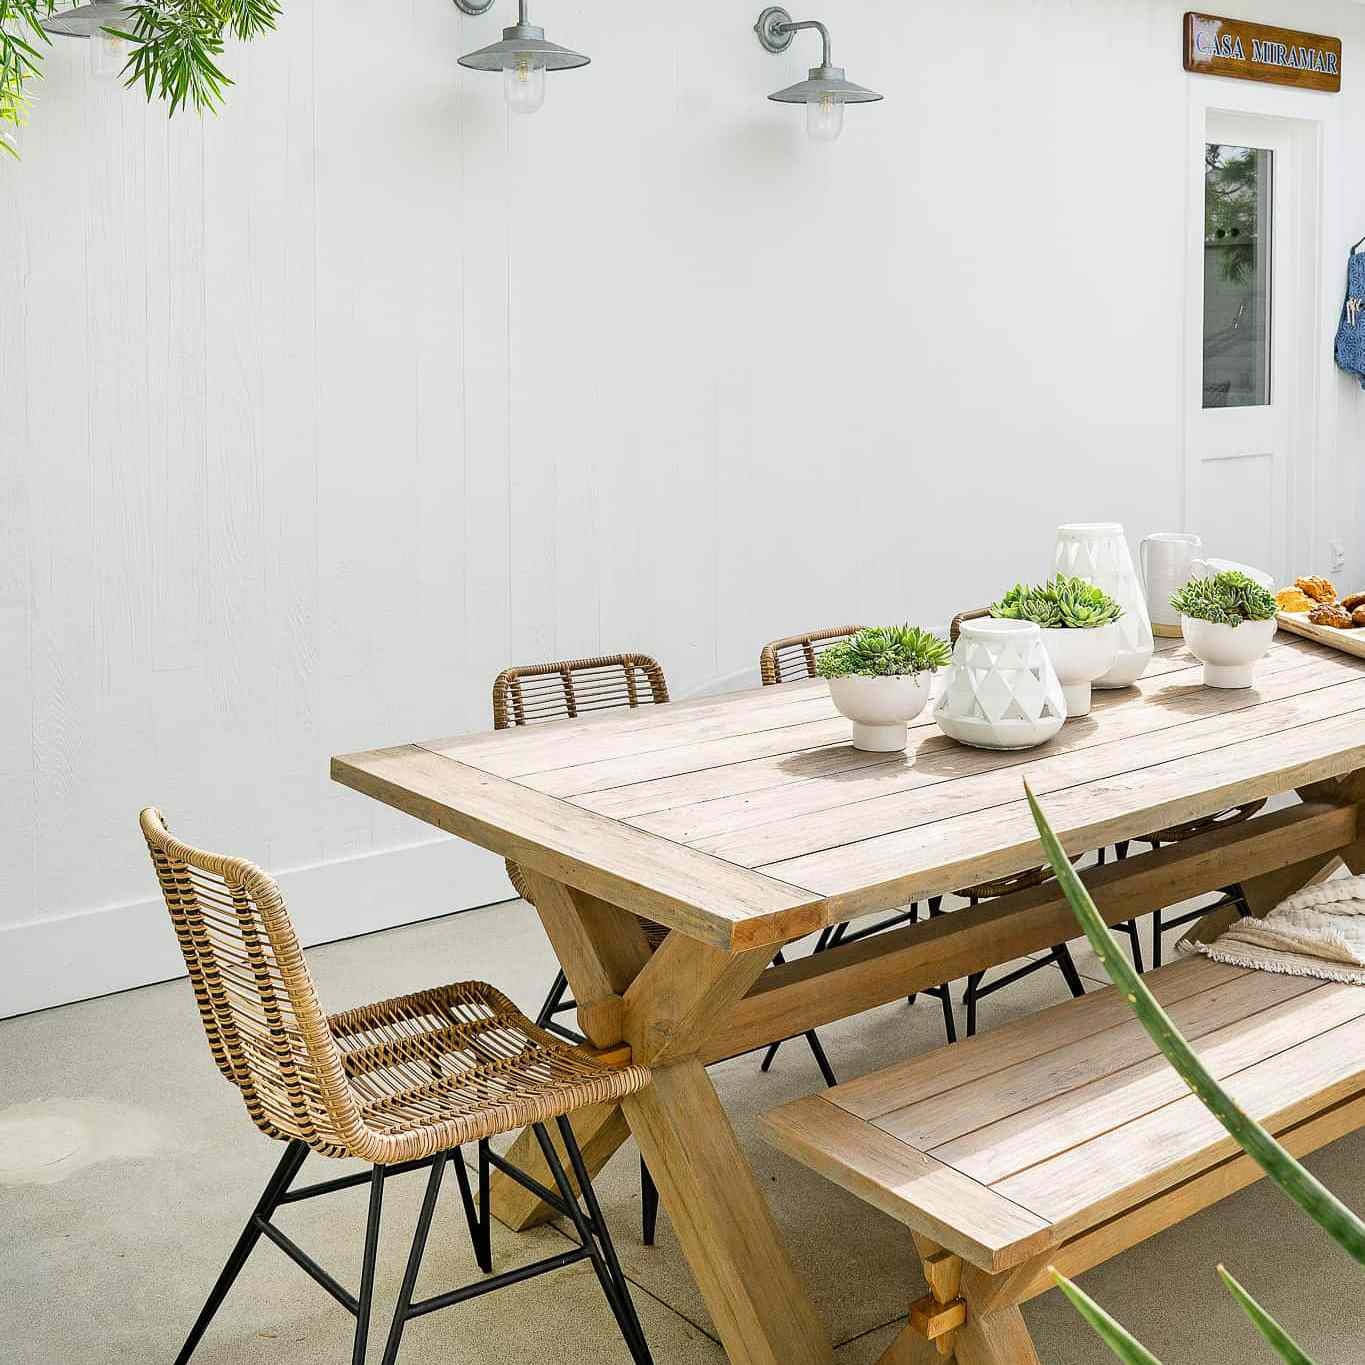 Wooden outdoor dining table.